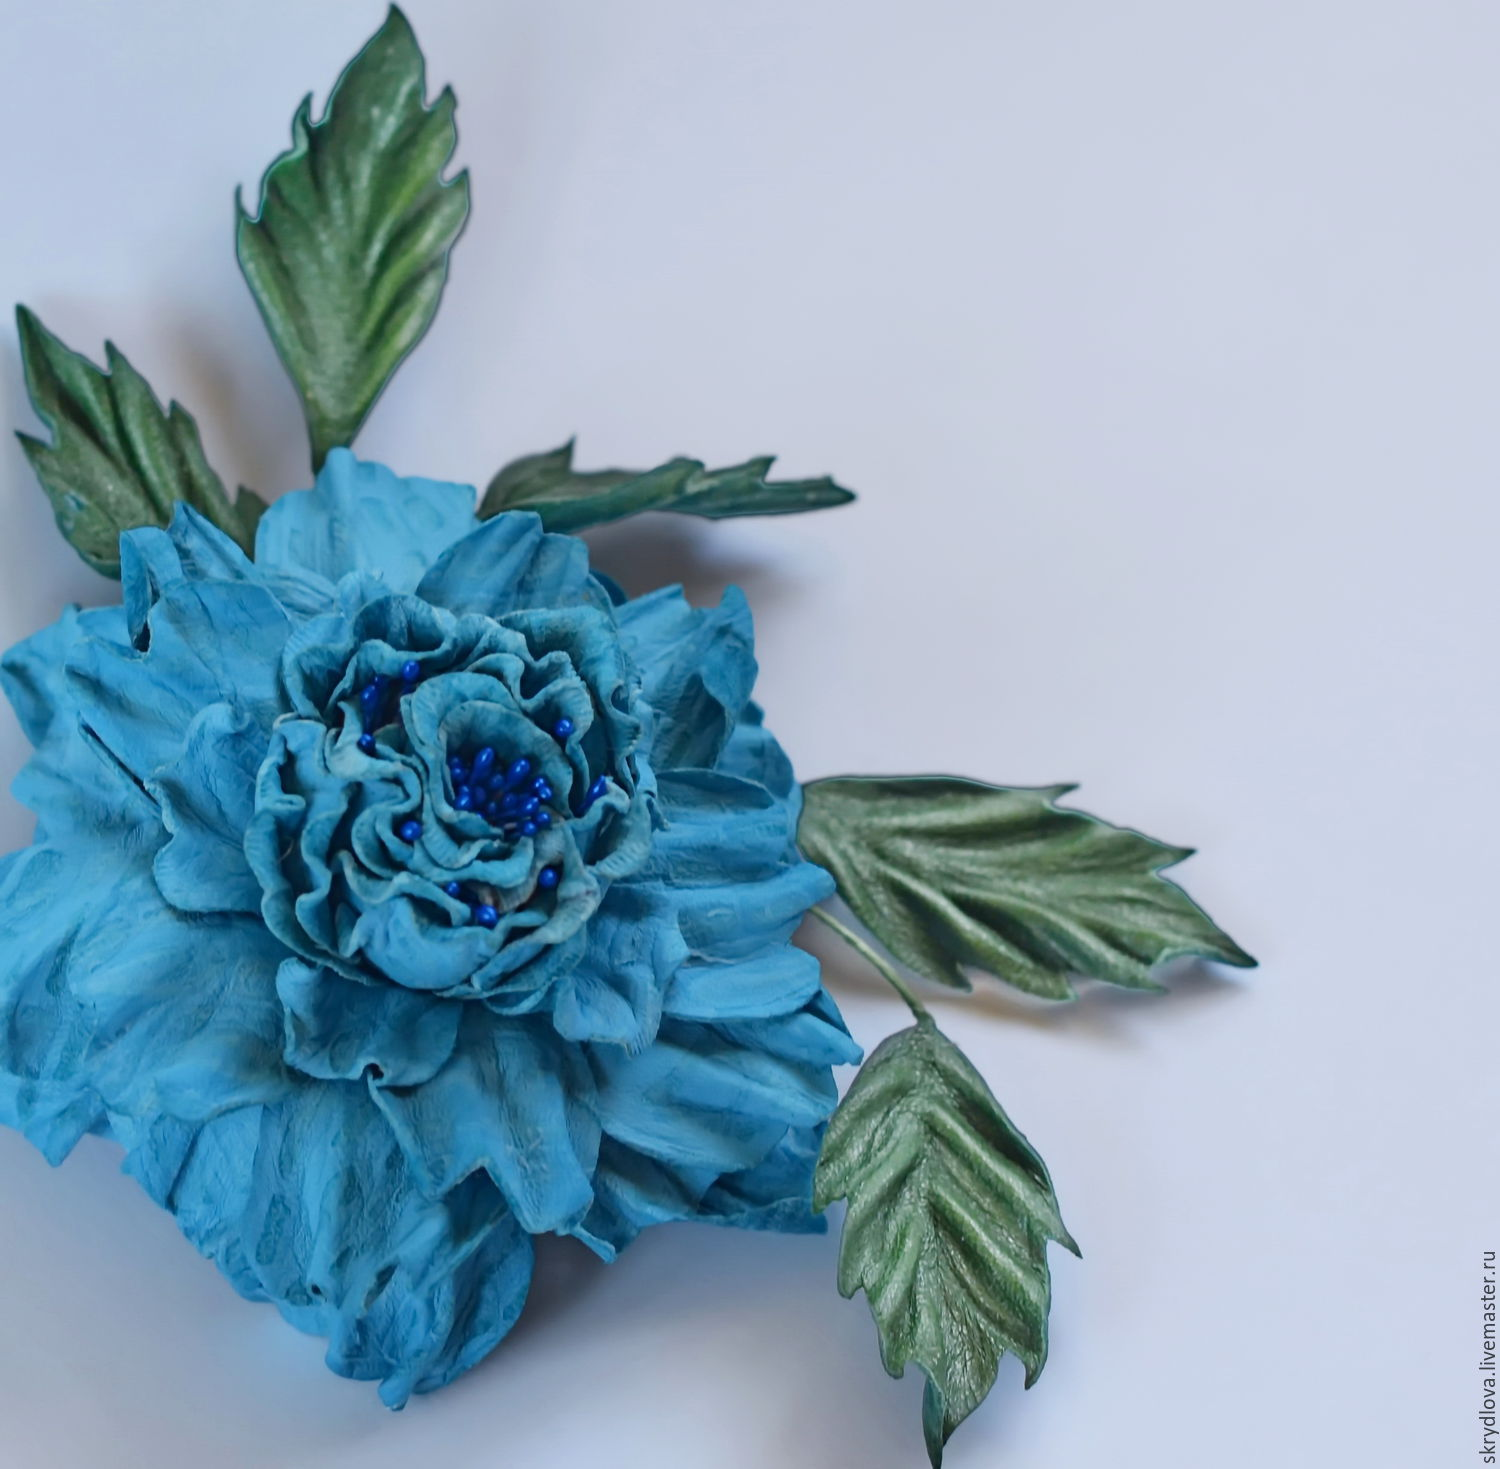 Leather flowers rose-brooch 'Blue dream', Brooches, Lyubertsy,  Фото №1